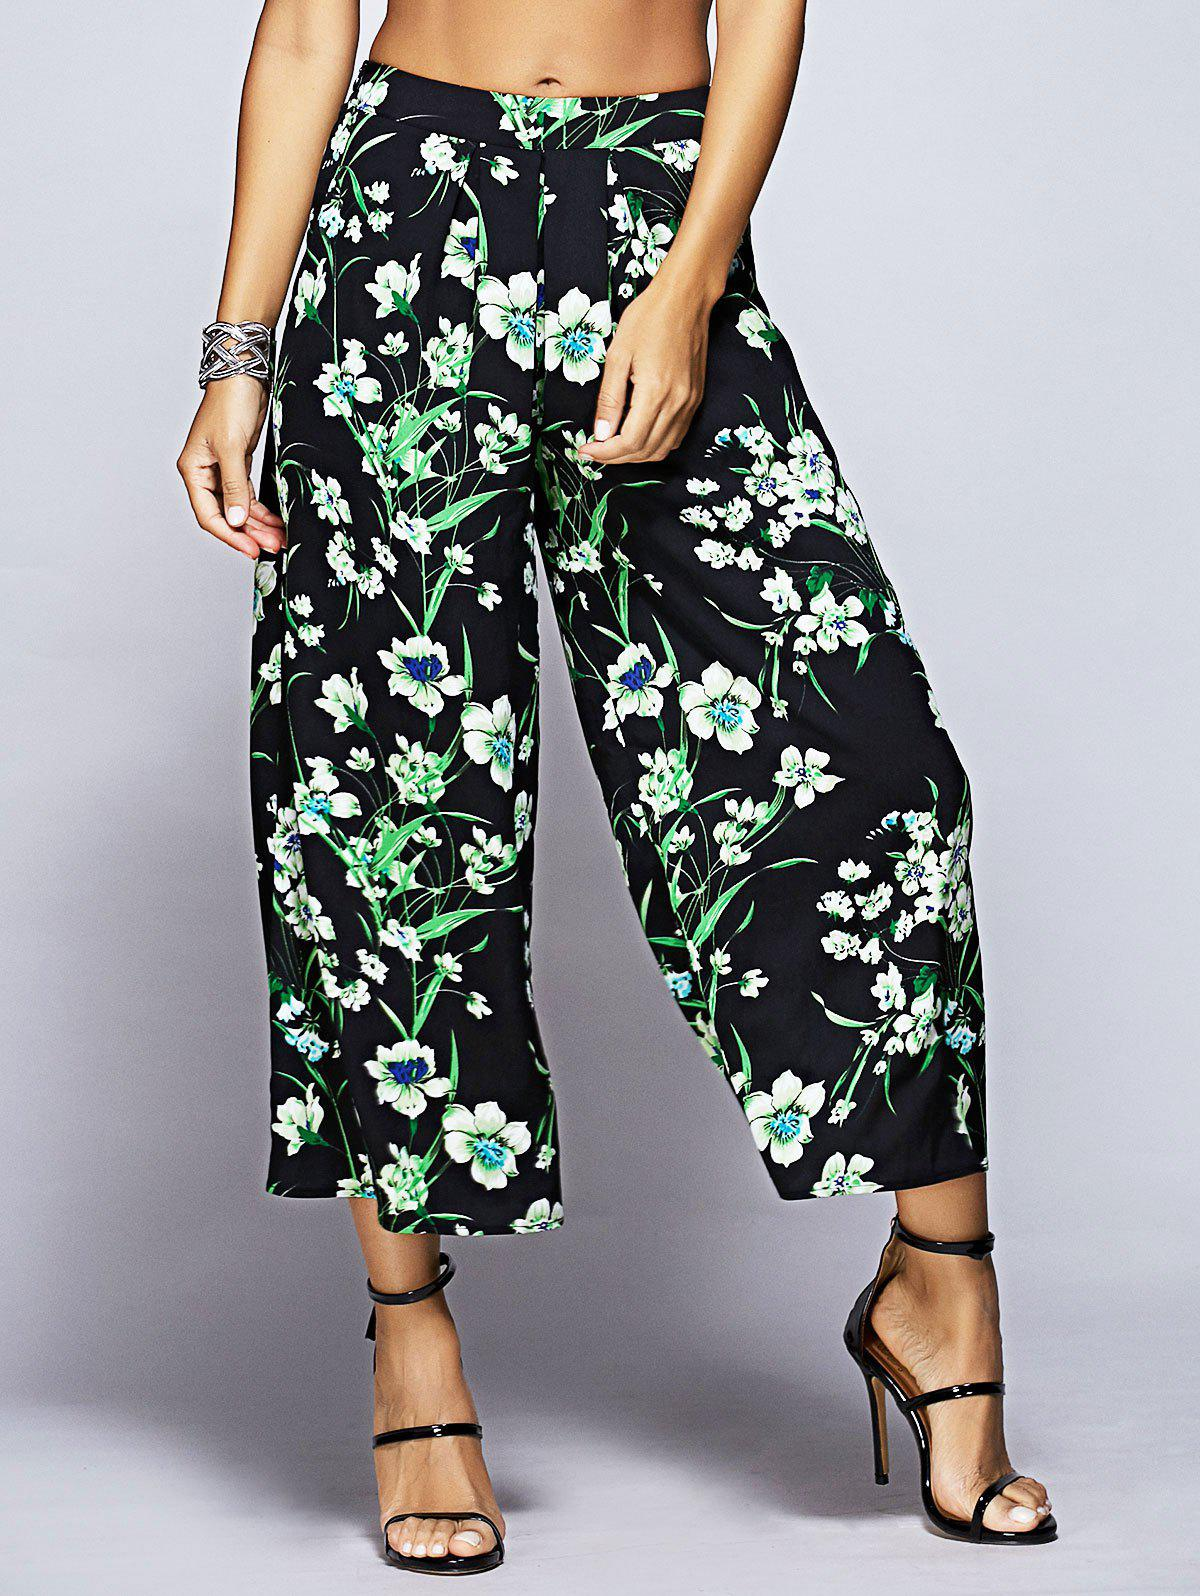 Stylish Printing Nine Minutes Pants For Women - BLACK/GREEN S